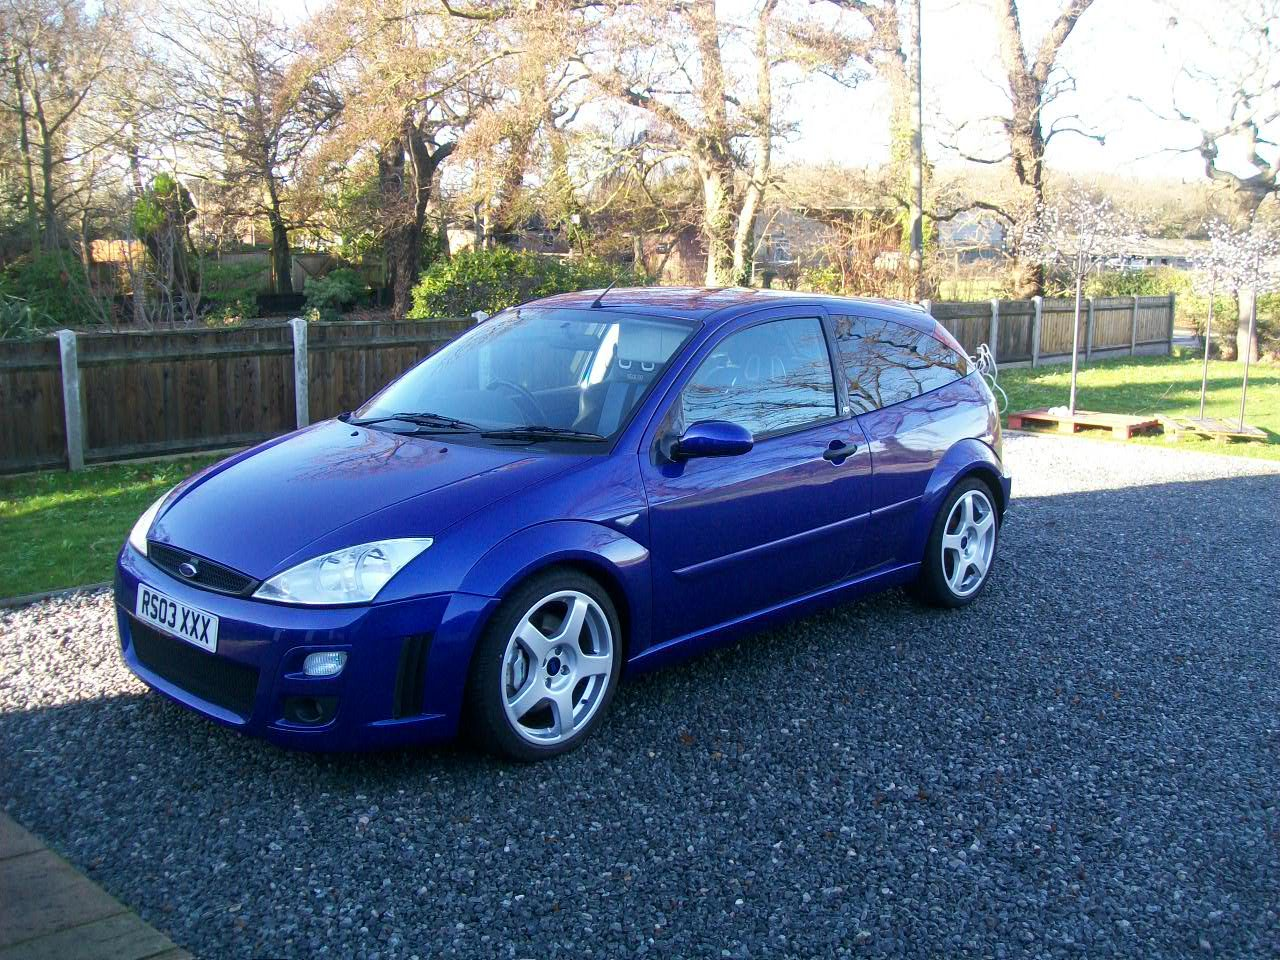 2003 Ford focus rs mk1 SOLD (picture 1 of 4)